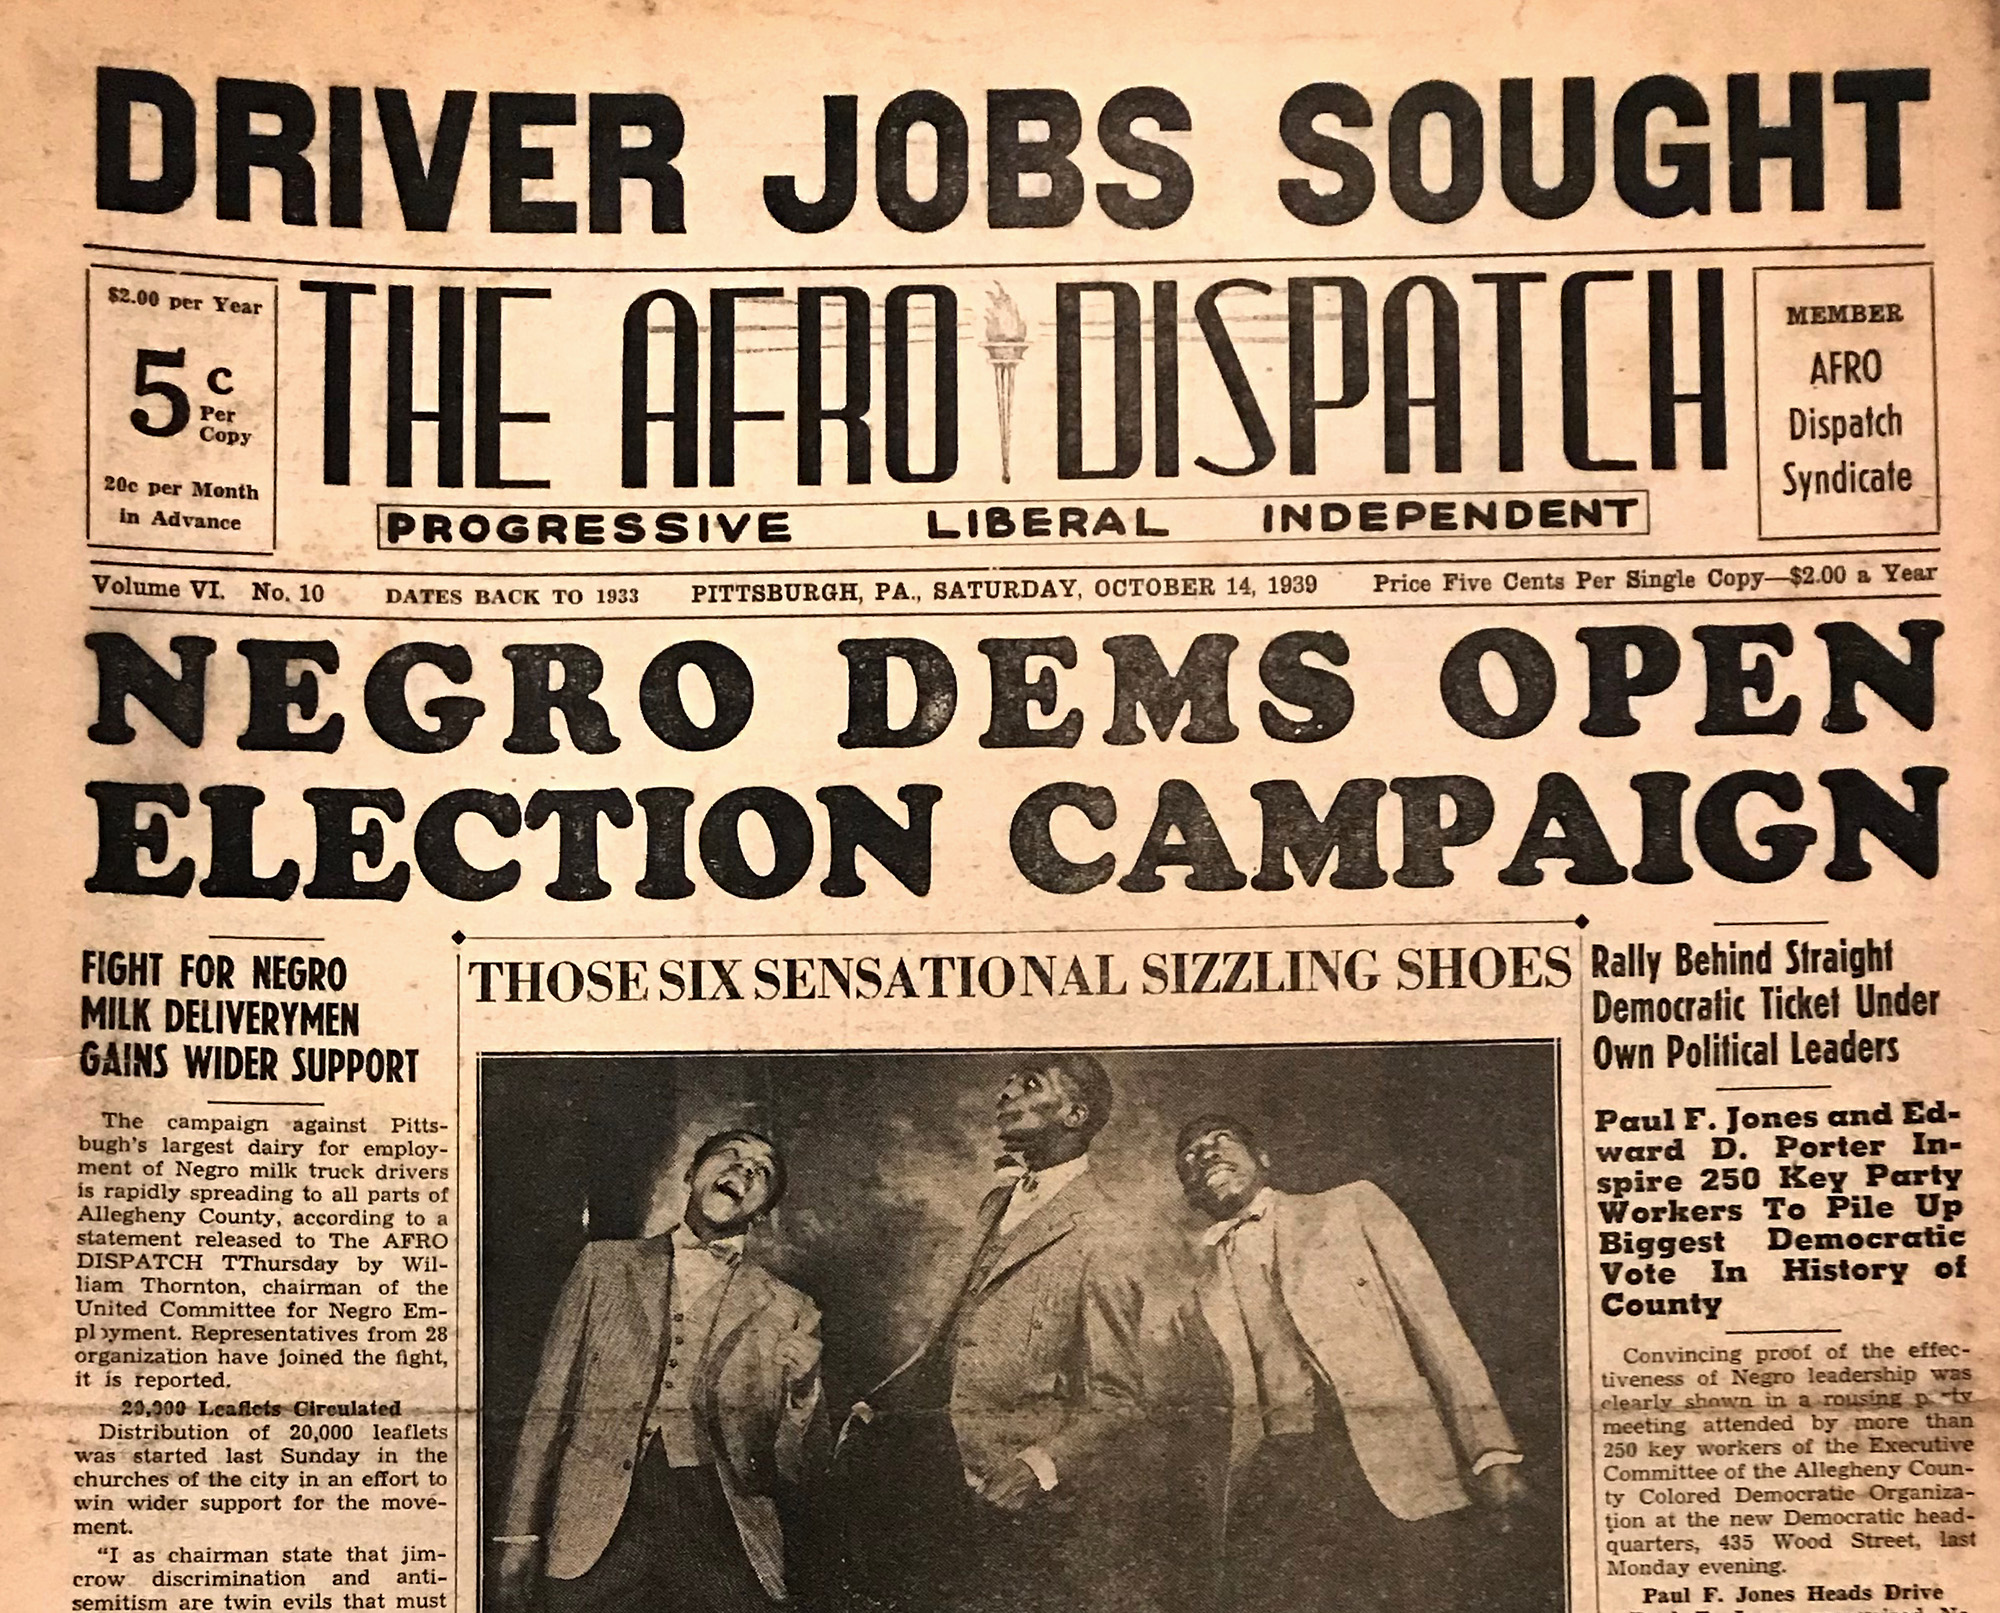 The lost issues of the Pittsburgh Courier